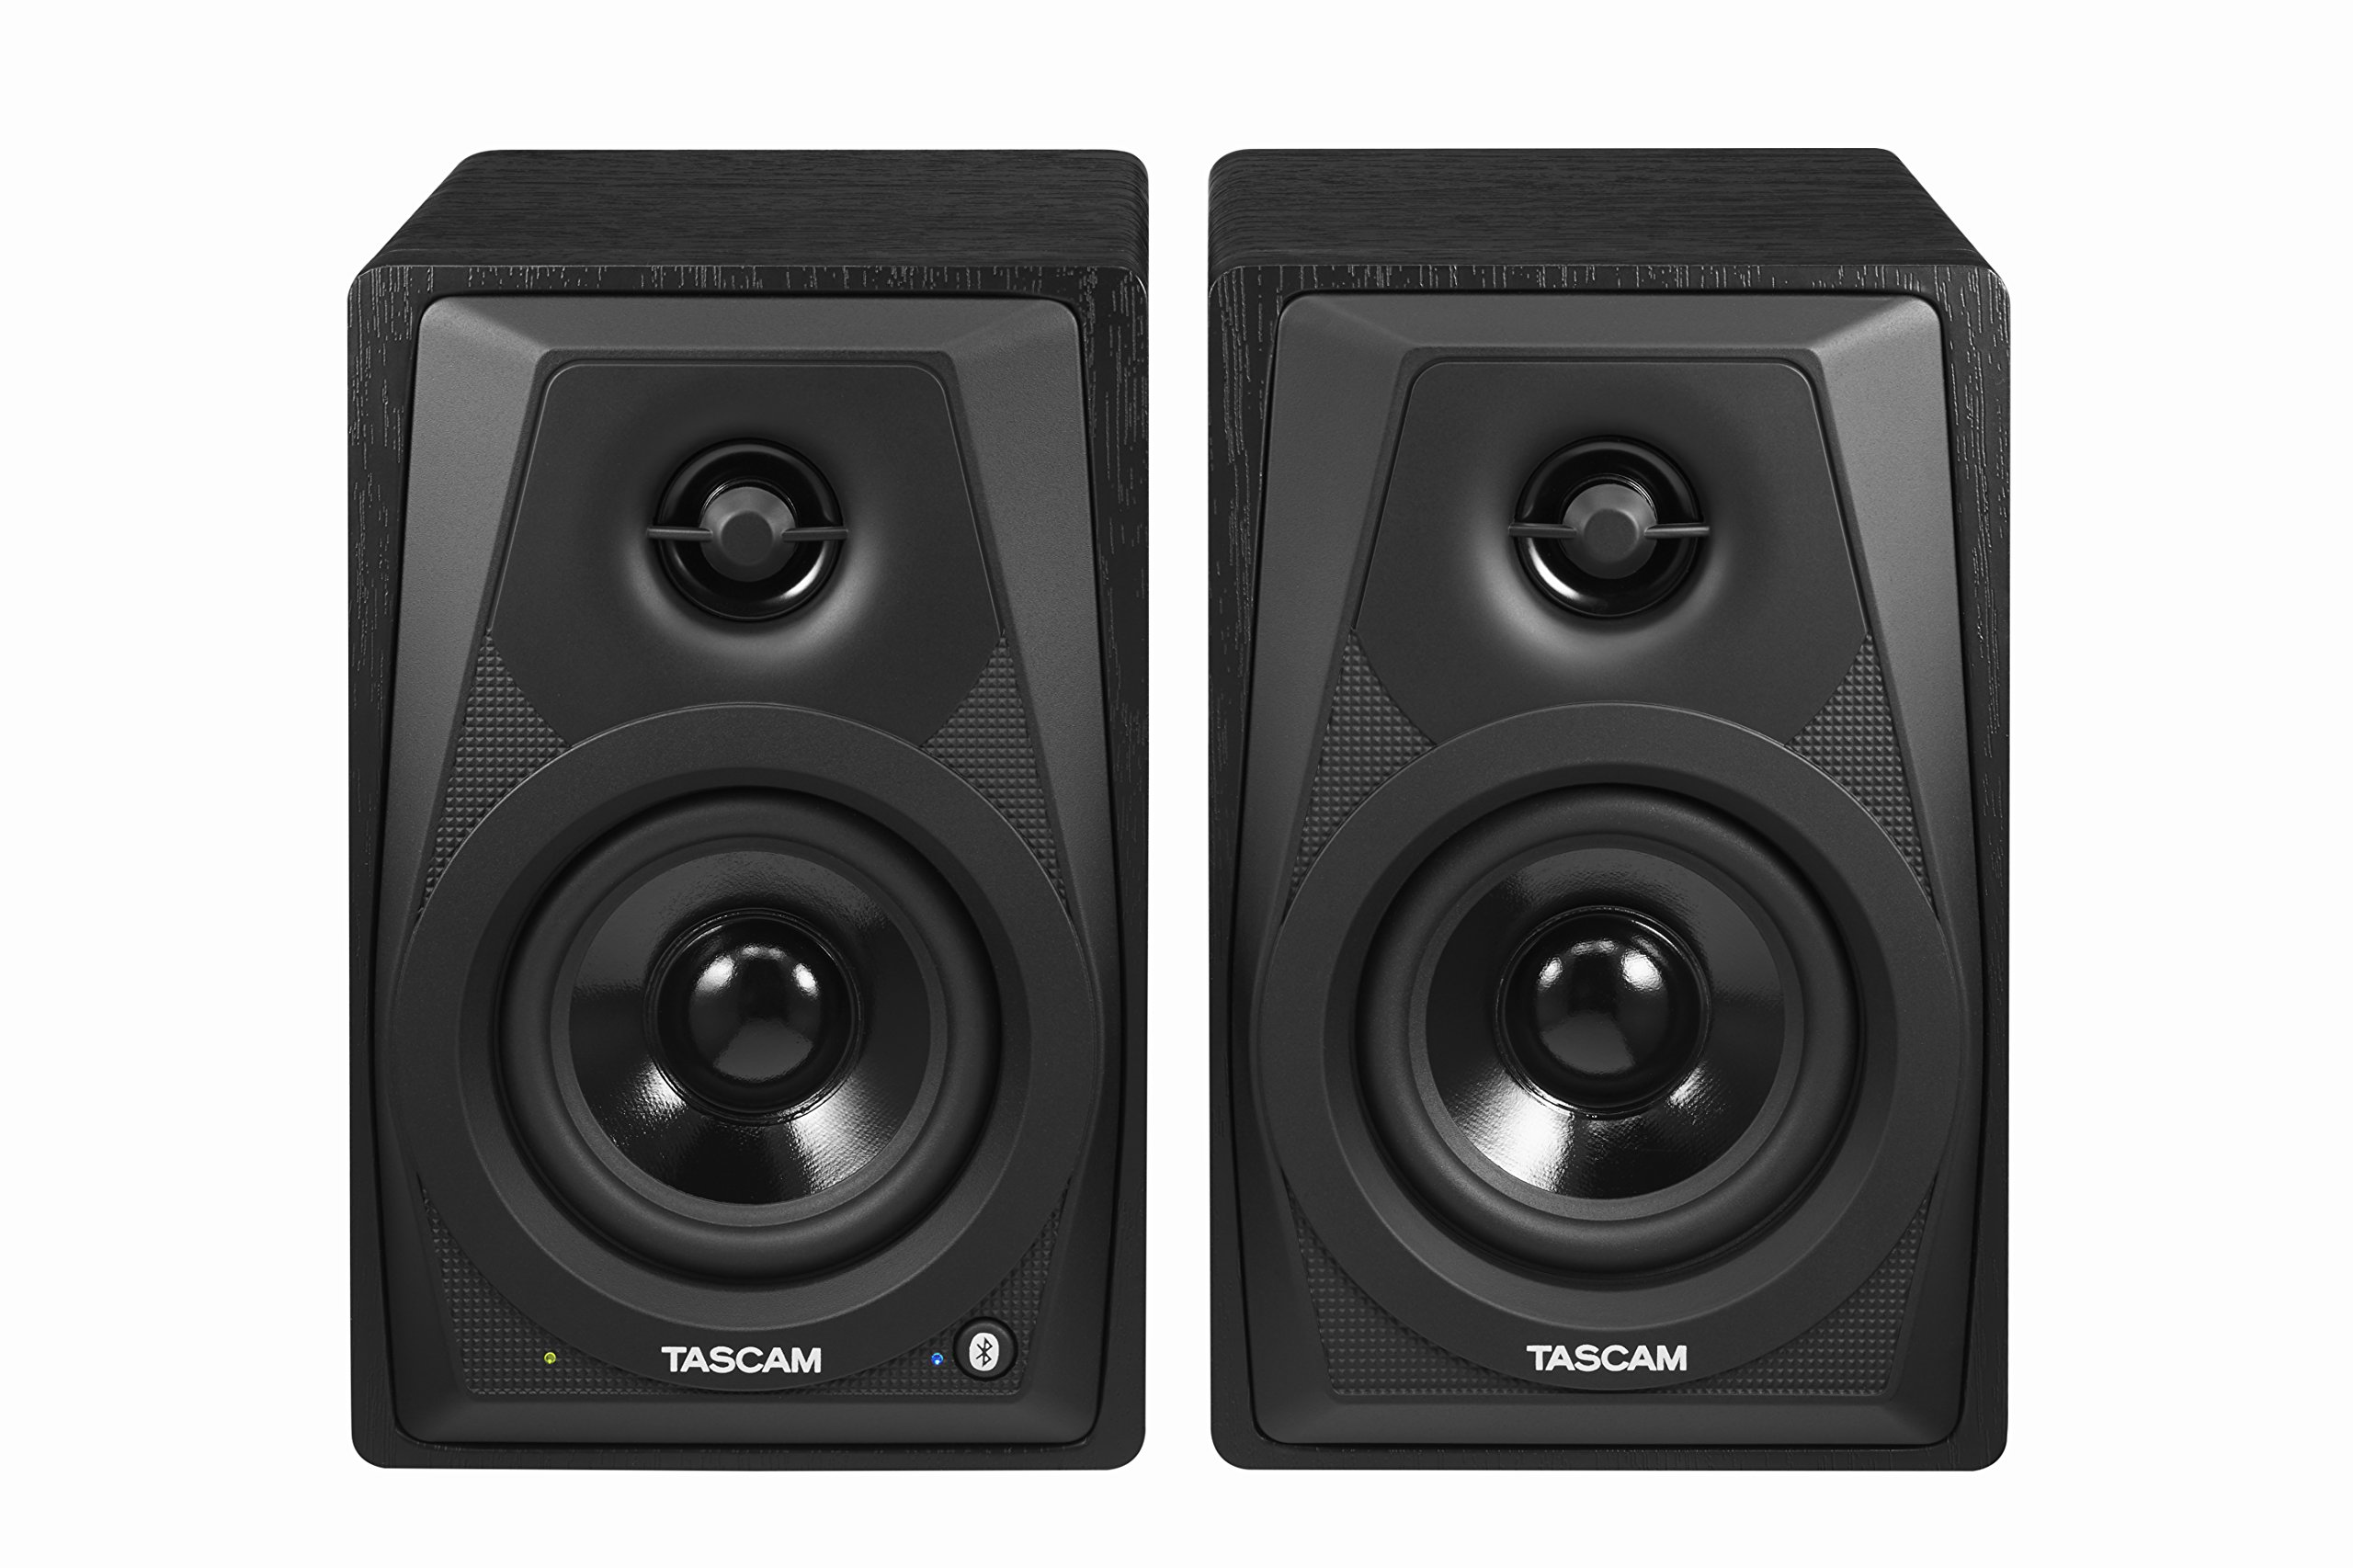 Tascam VL-S3BT 2-Way Powered Desktop Monitor Speakers With Bluetooth Wireless, 14 Watts